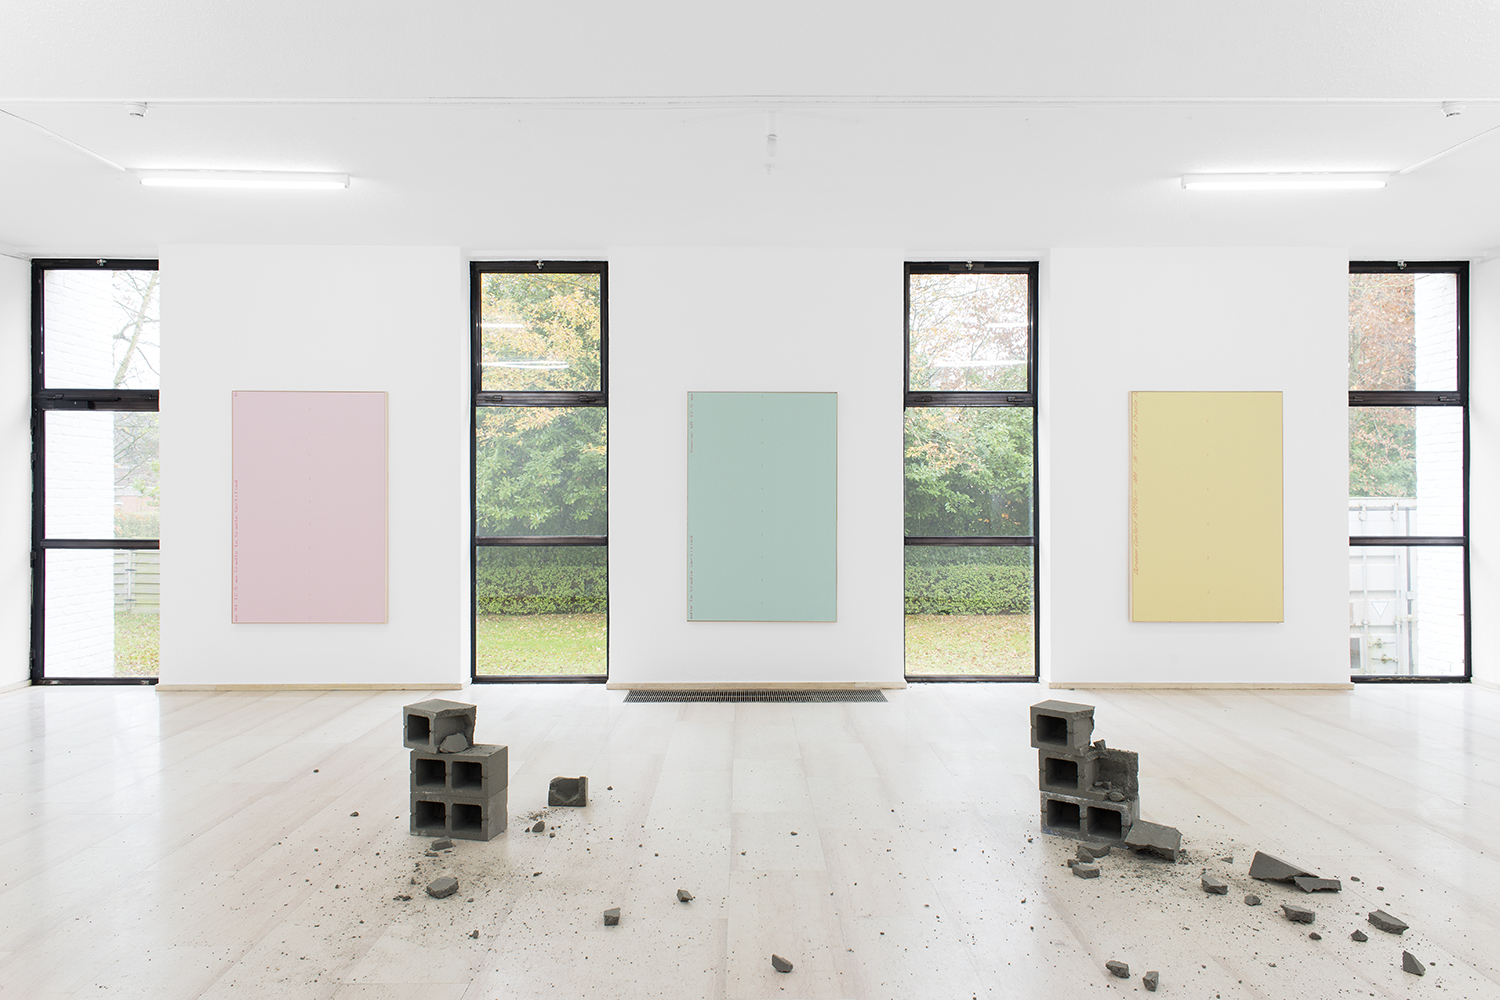 Isaac Brest  Piero Bisello #1/Piero Bisello #2/Piero Bisello #3 , 2014 Various brand of drywall in artist frame 72 x 48 inches each